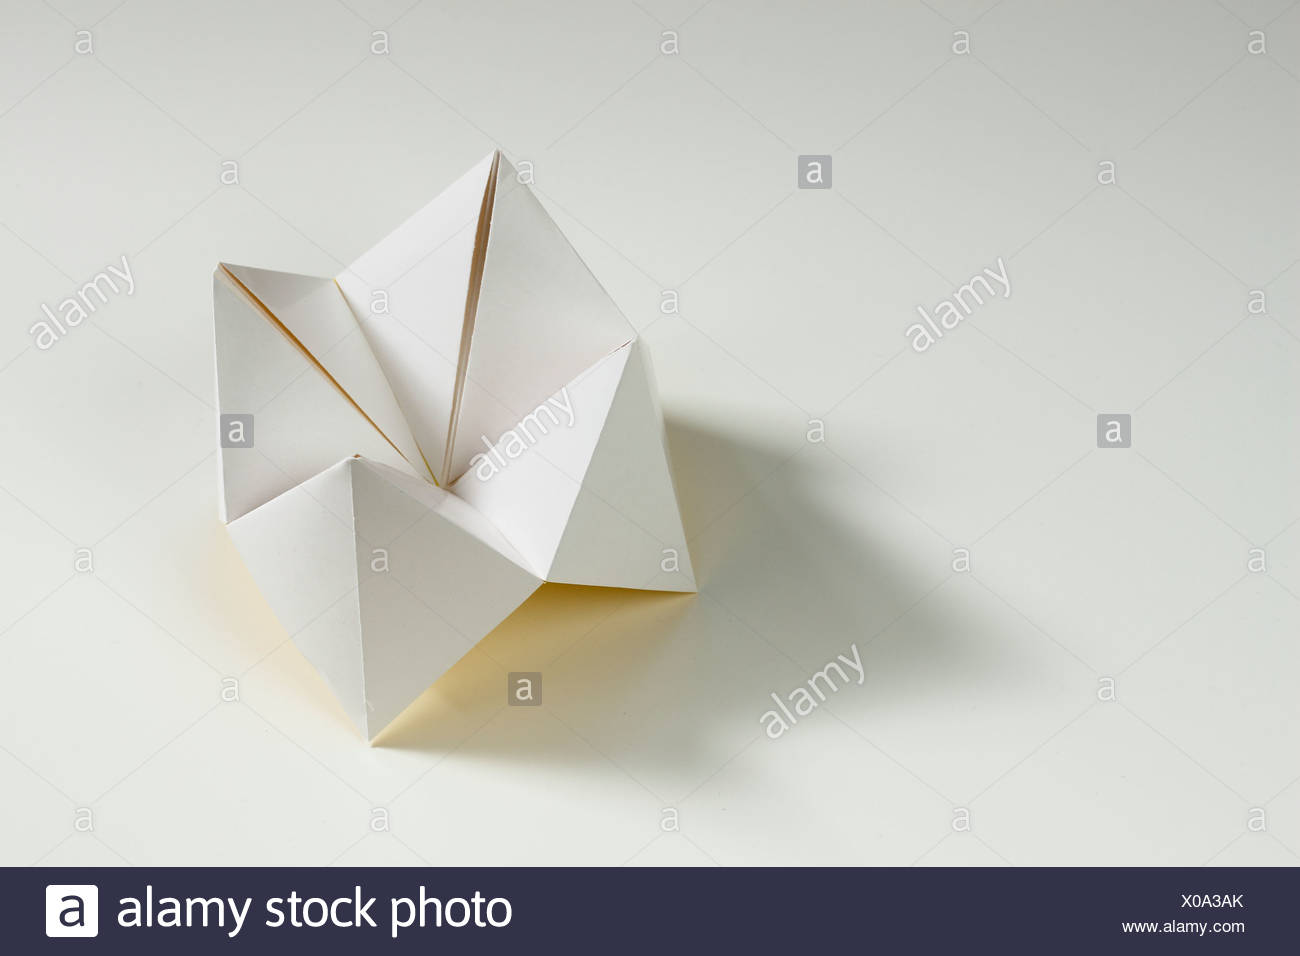 Paper fortune teller game stock photos paper fortune teller game origami fortune teller on white background stock image jeuxipadfo Images